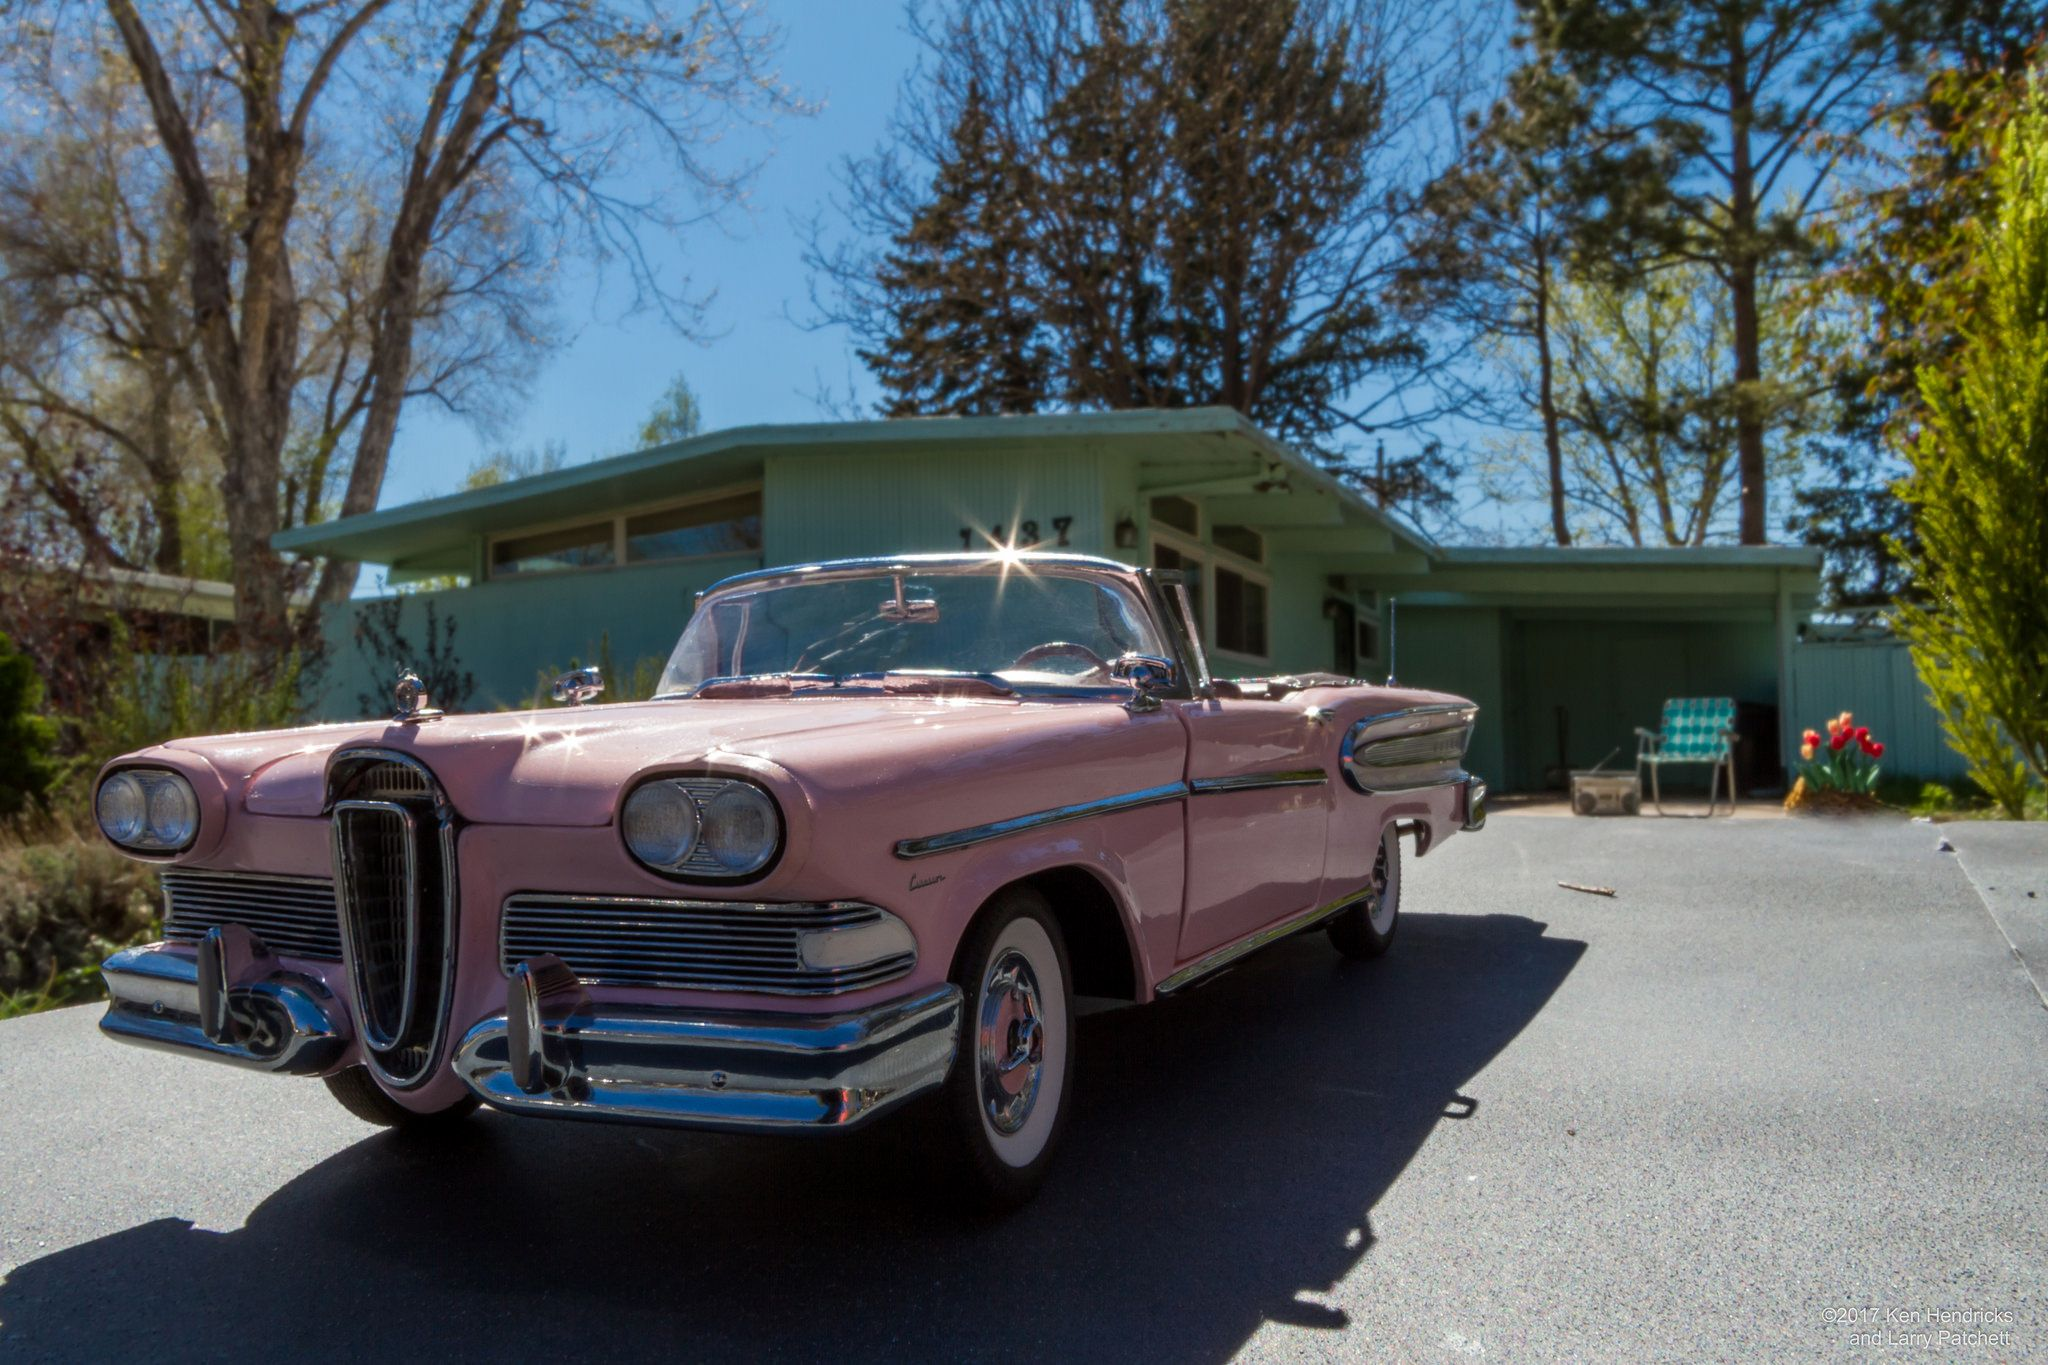 Favorite Failure Son Of Clunker Or Classic Edsel Edsel Ford Car